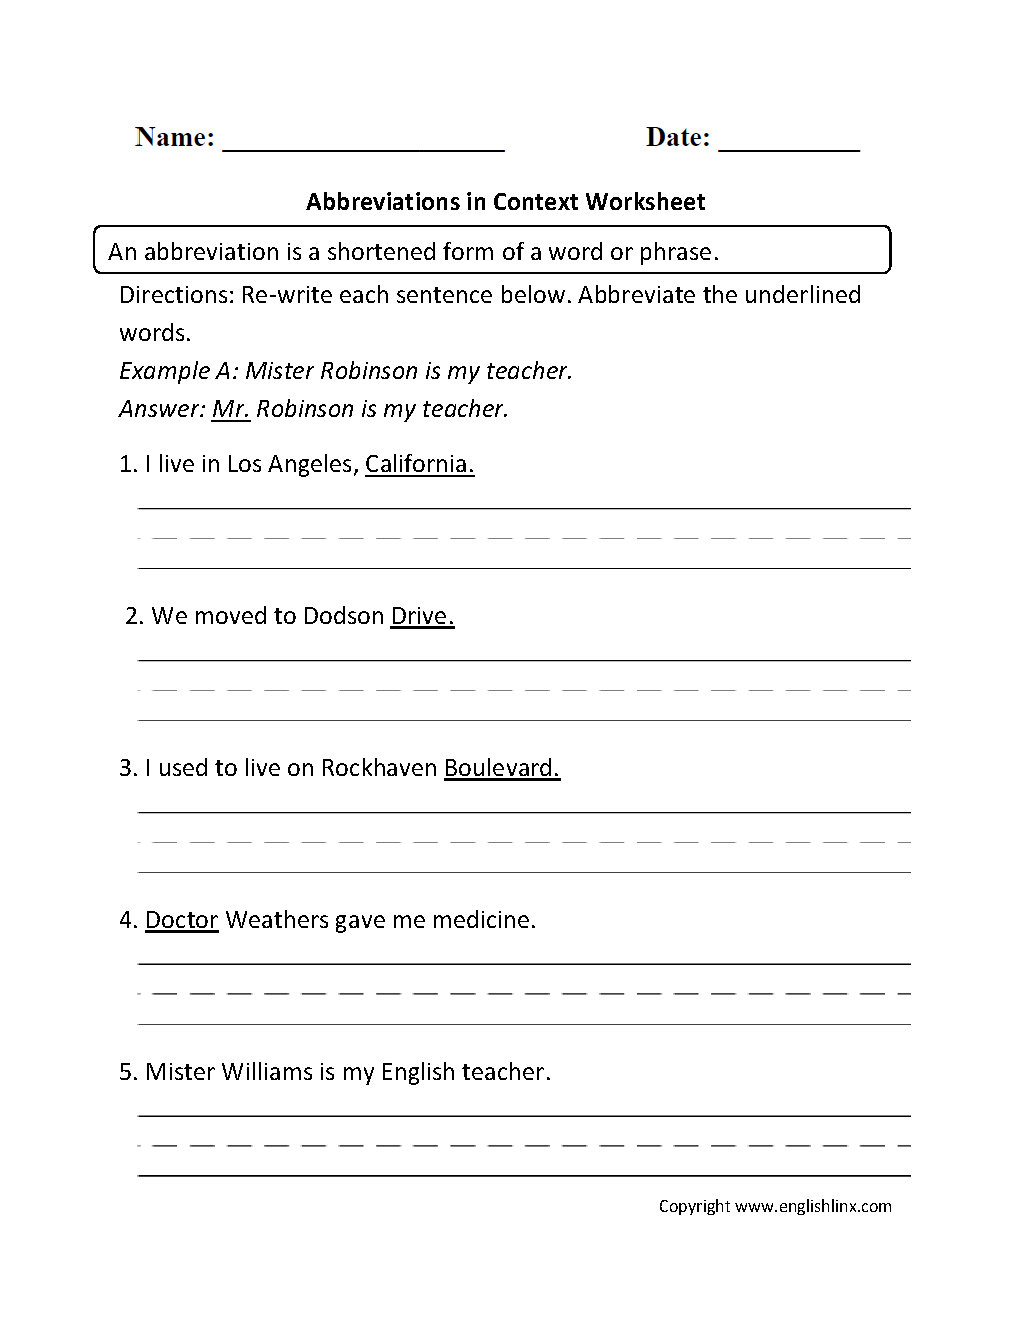 Abbreviations in Context Worksheet | Worksheets | Pinterest ...